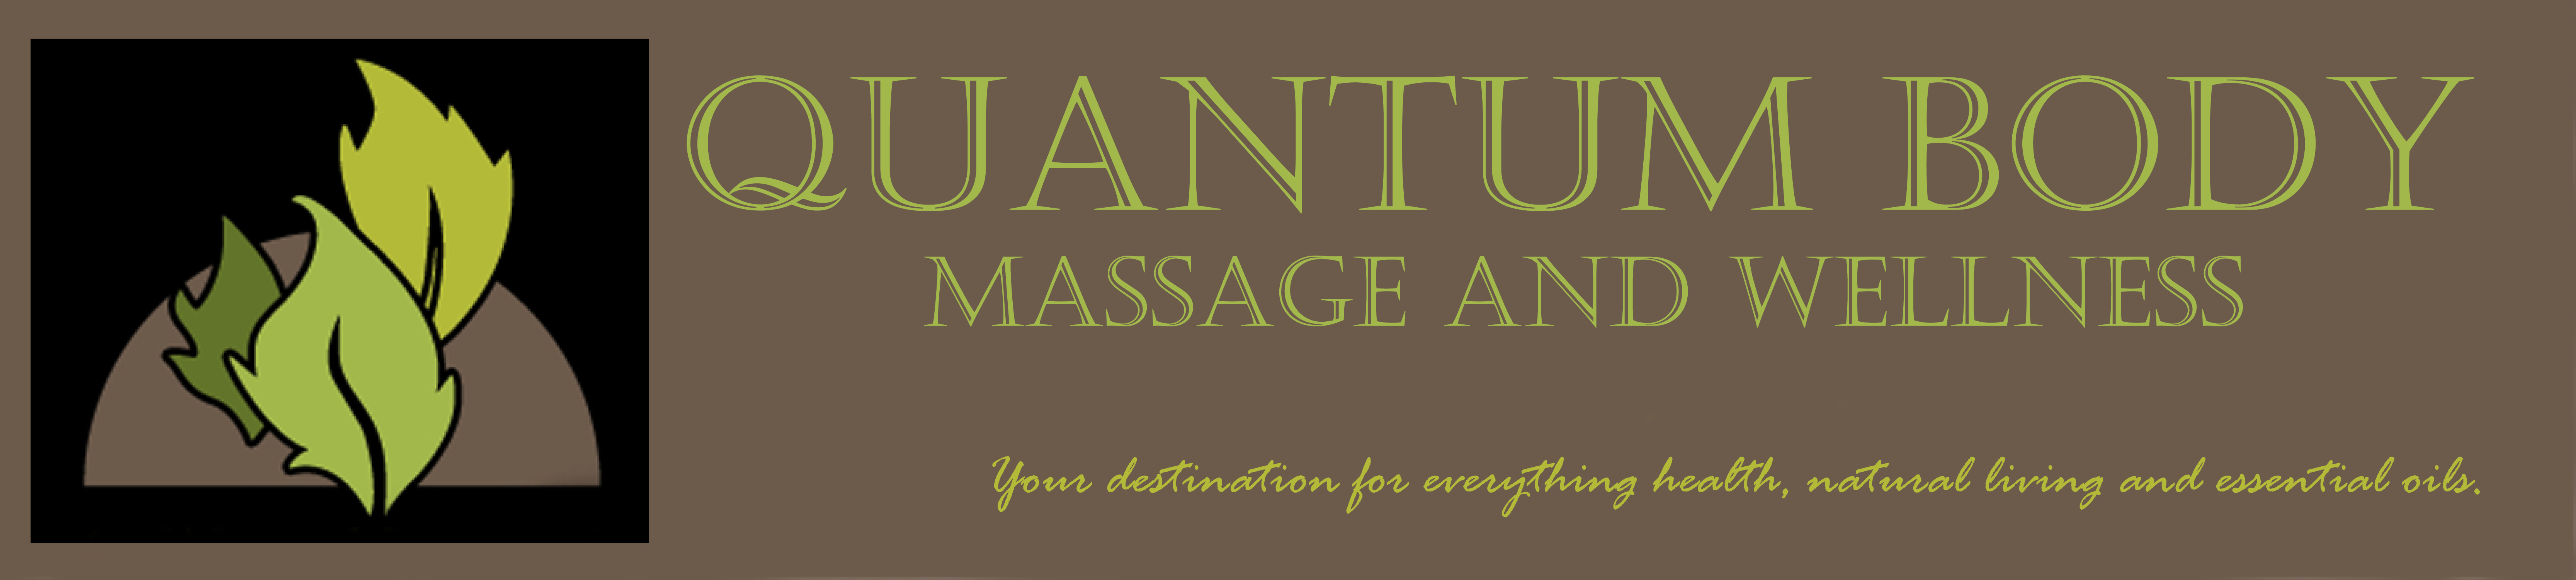 Quantum Body Massage and Wellness